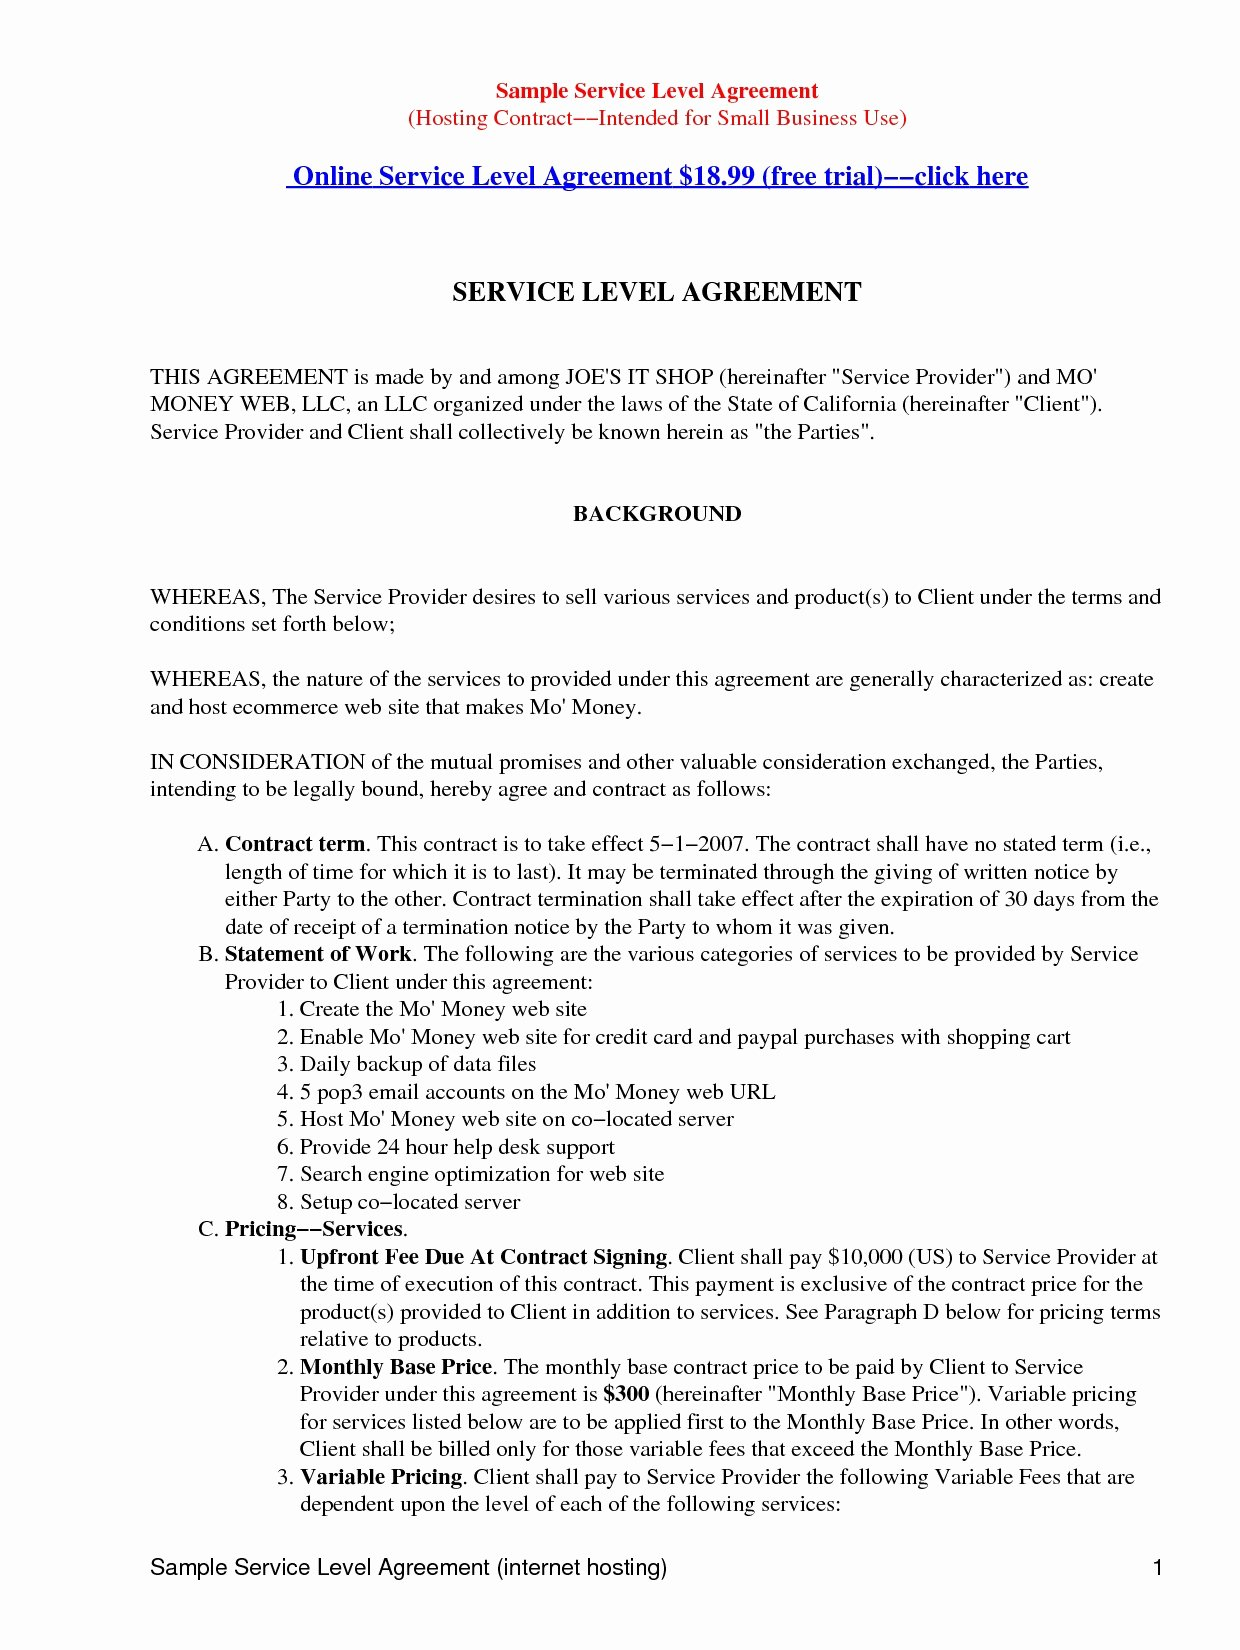 Master Service Agreement Template New 41 Advanced Master Service Level Agreement Oo W